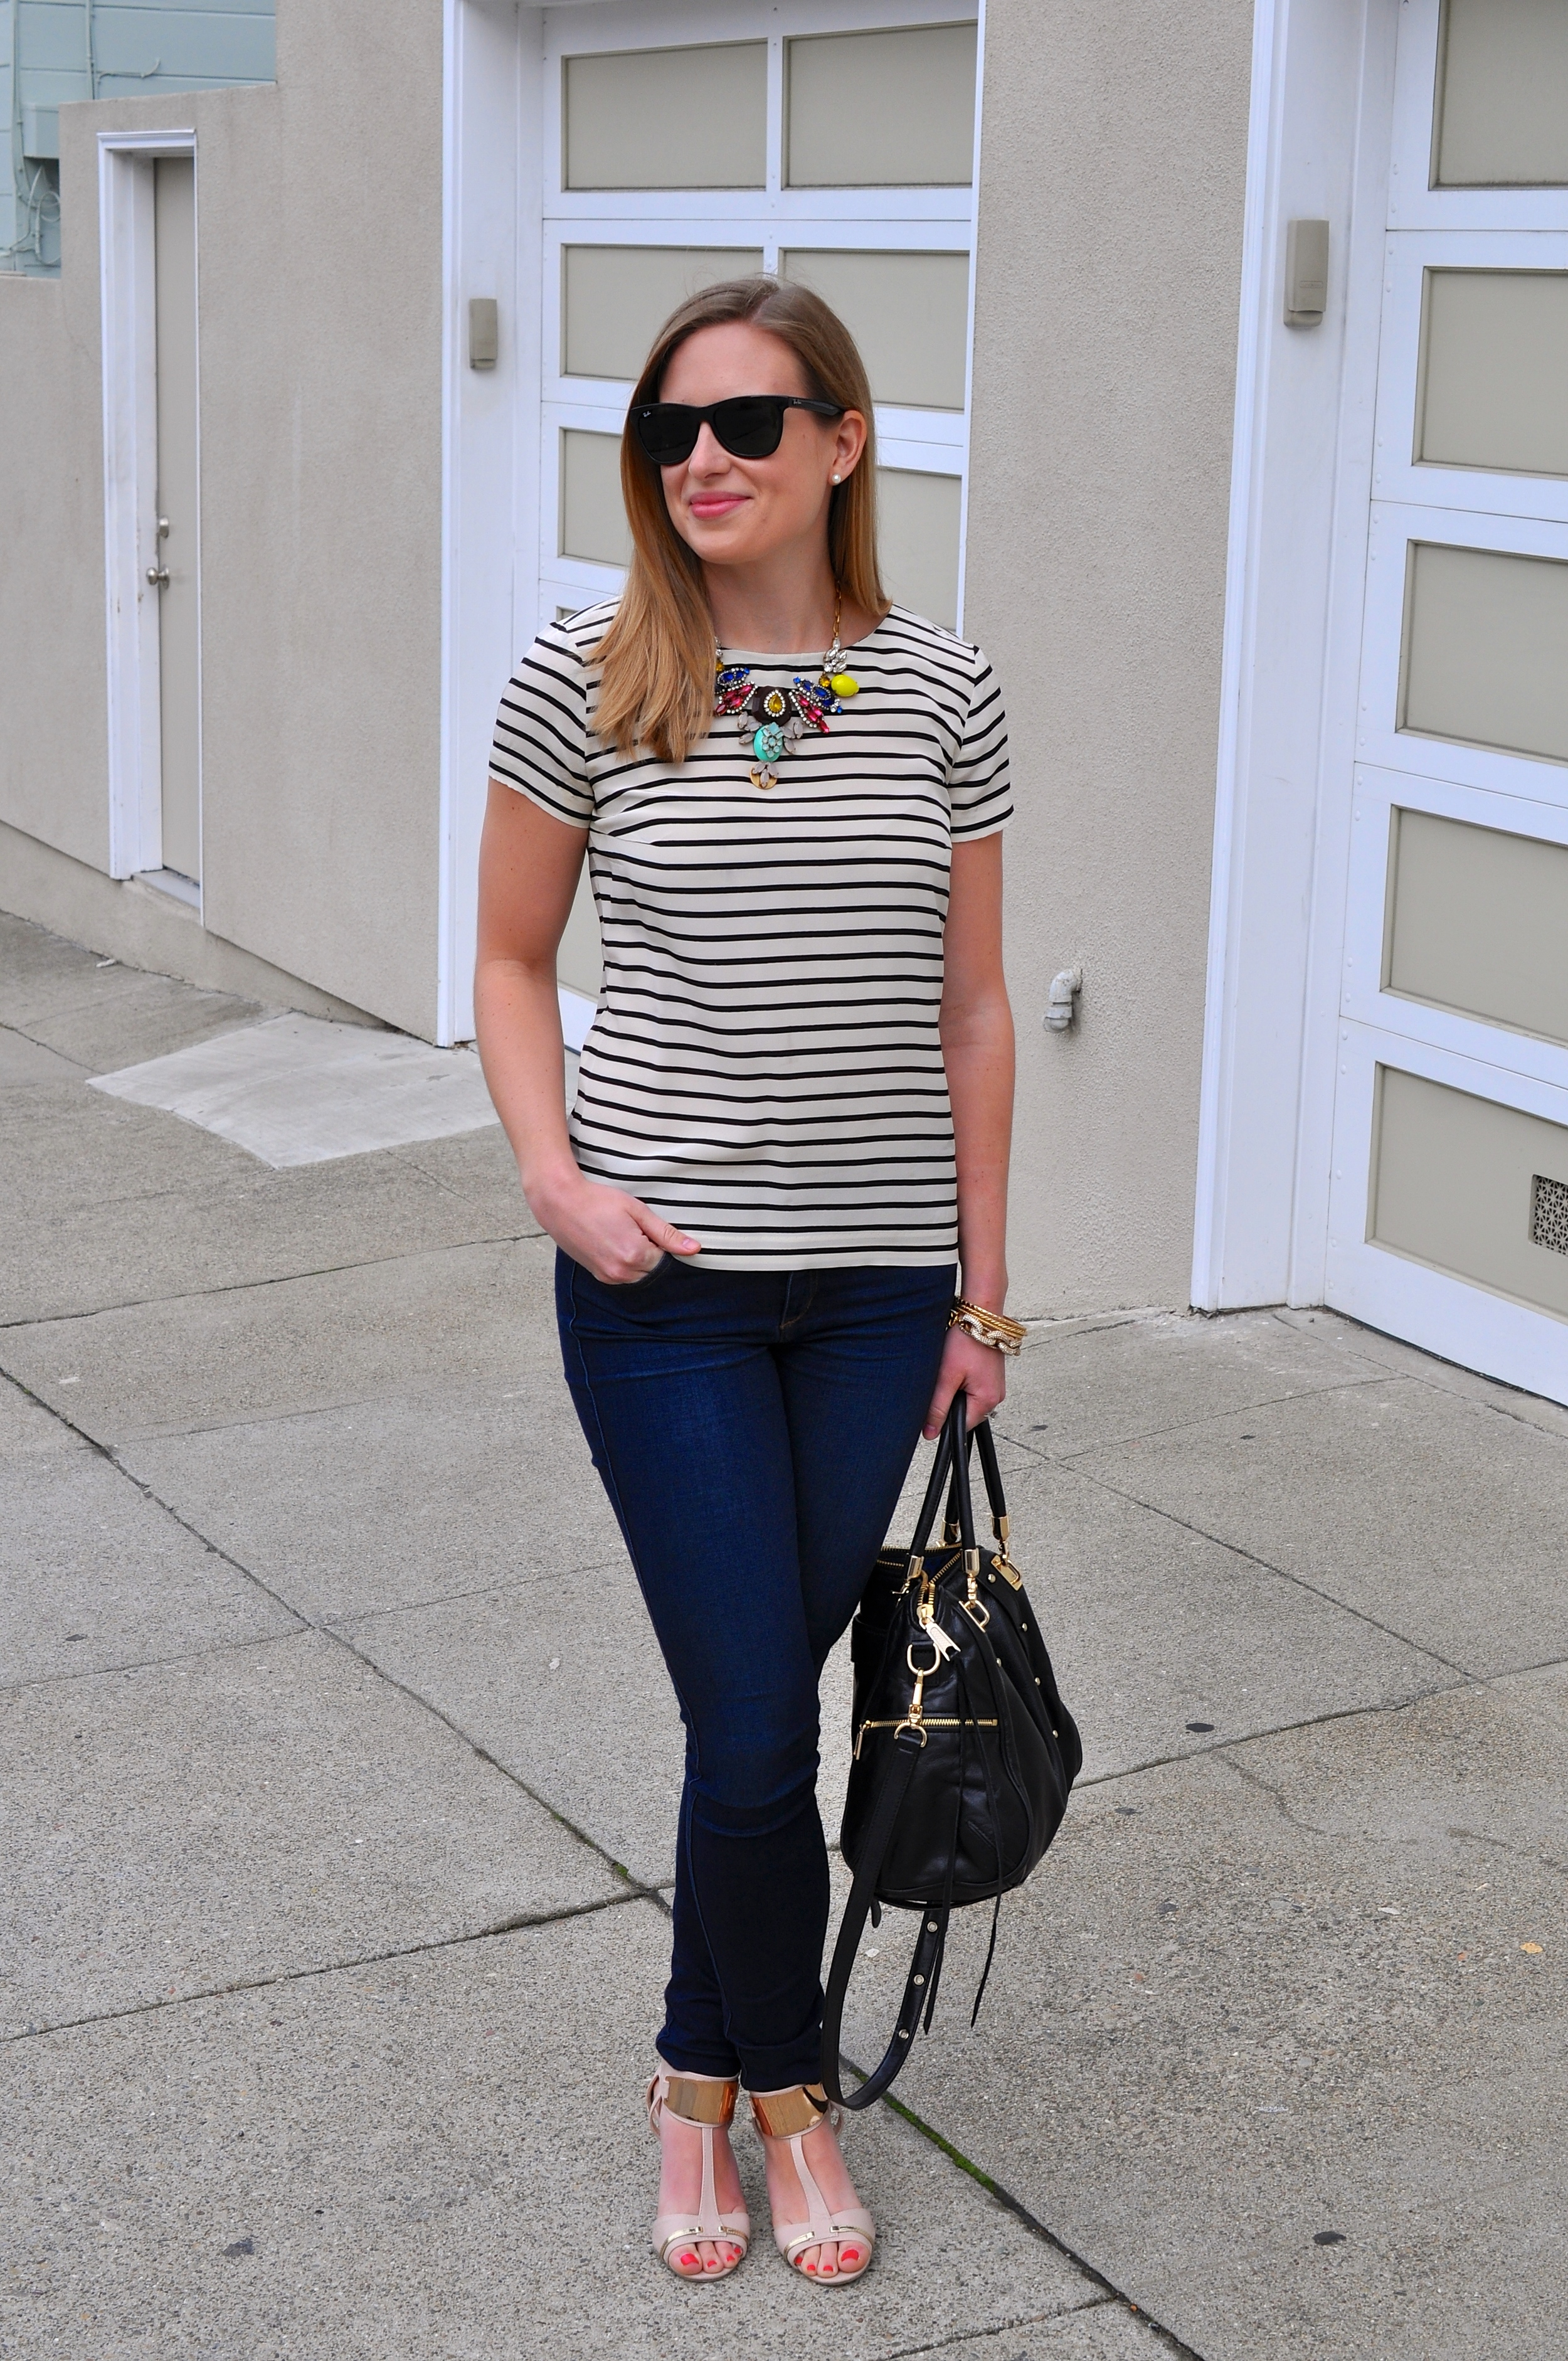 J. Crew shirt (old), Joe's jeans (old), Shoedazzle shoes (old), J. Crew necklace (not in stock), J. Crew bracelet, J. Crew bangles, Rebecca Minkoff bag, Ray-Ban sunglasses